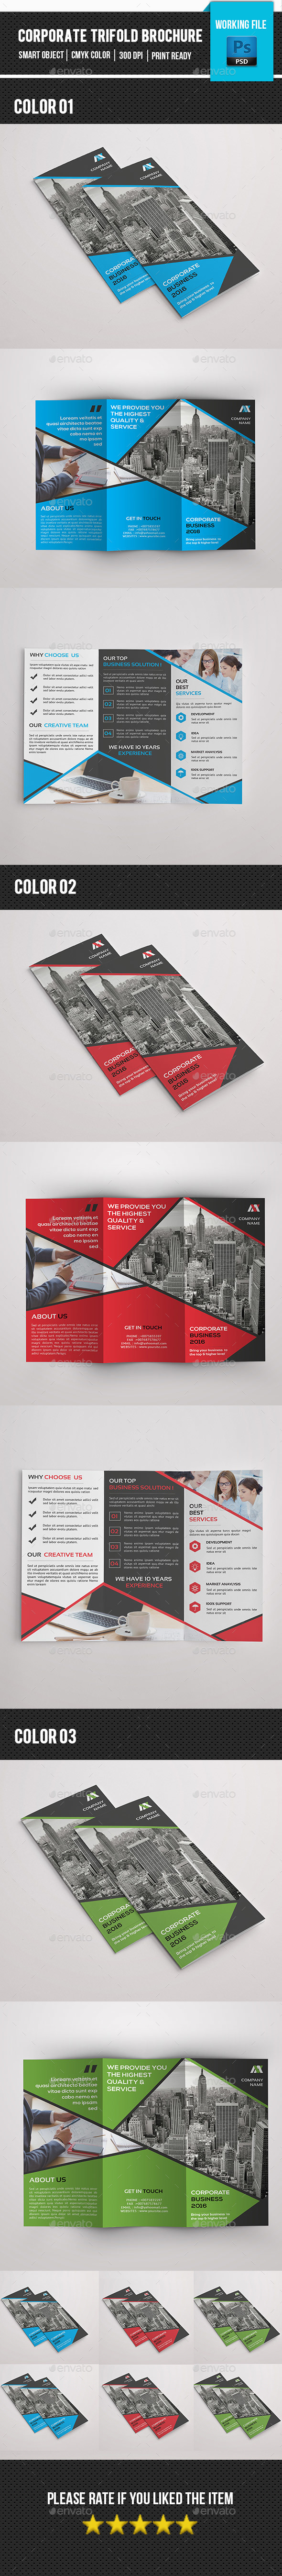 Corporate Trifold Brochure-V281 - Corporate Brochures